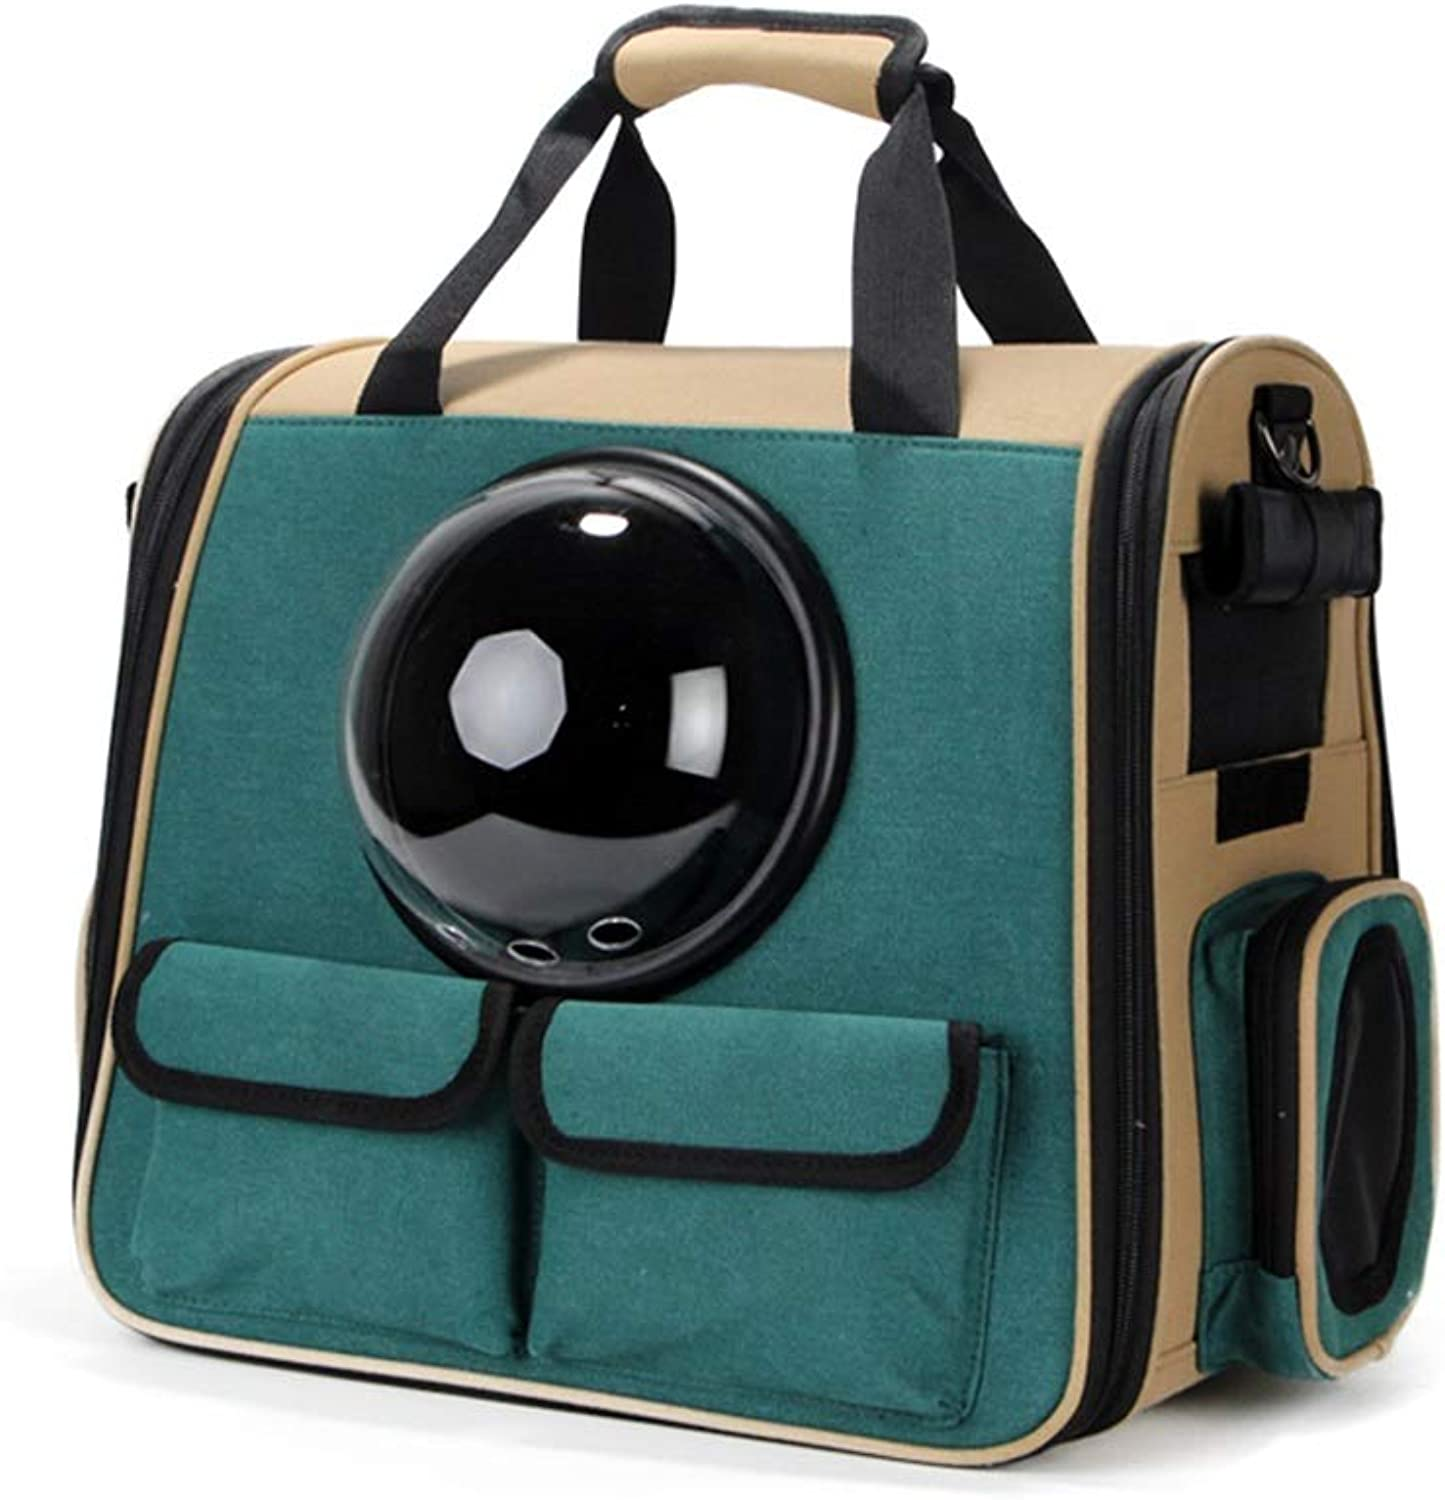 Pet Backpack Space Bag Outgoing Carrying Case Shoulder Bags Dog Bags Cat Cage (color   Green, Size   40X26X36cm)